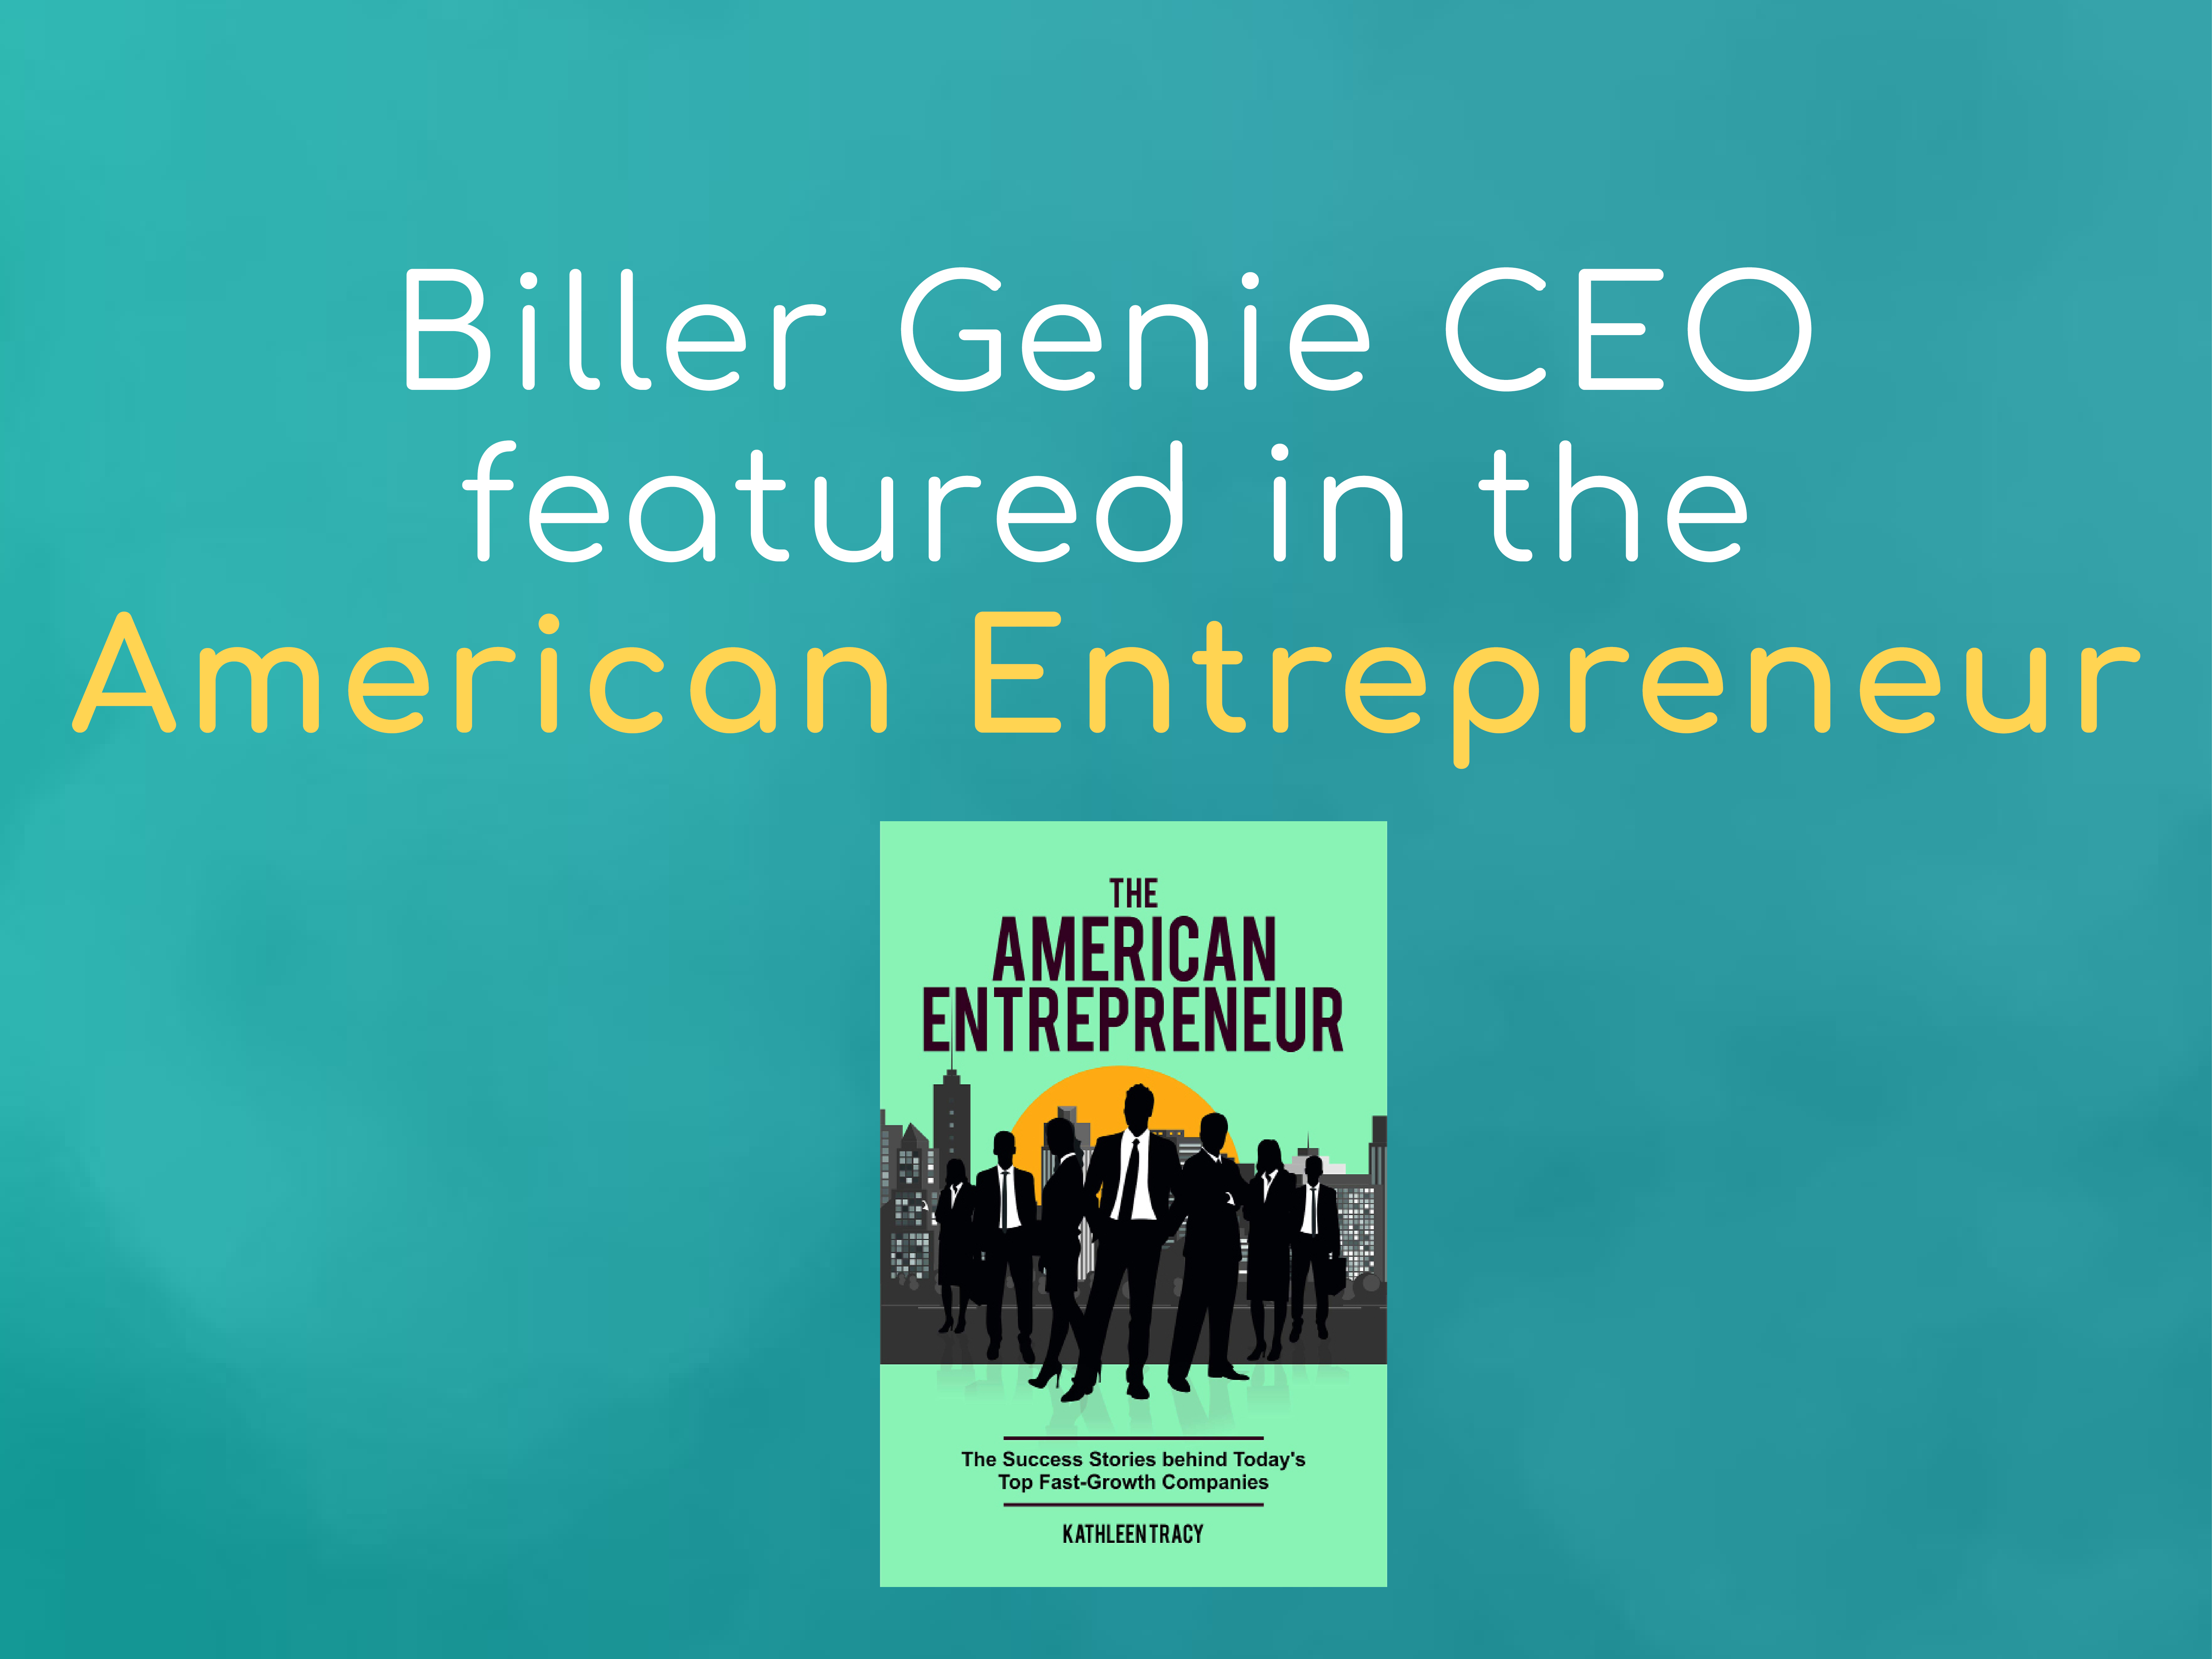 Biller Genie CEO featured in the American Entrepreneur